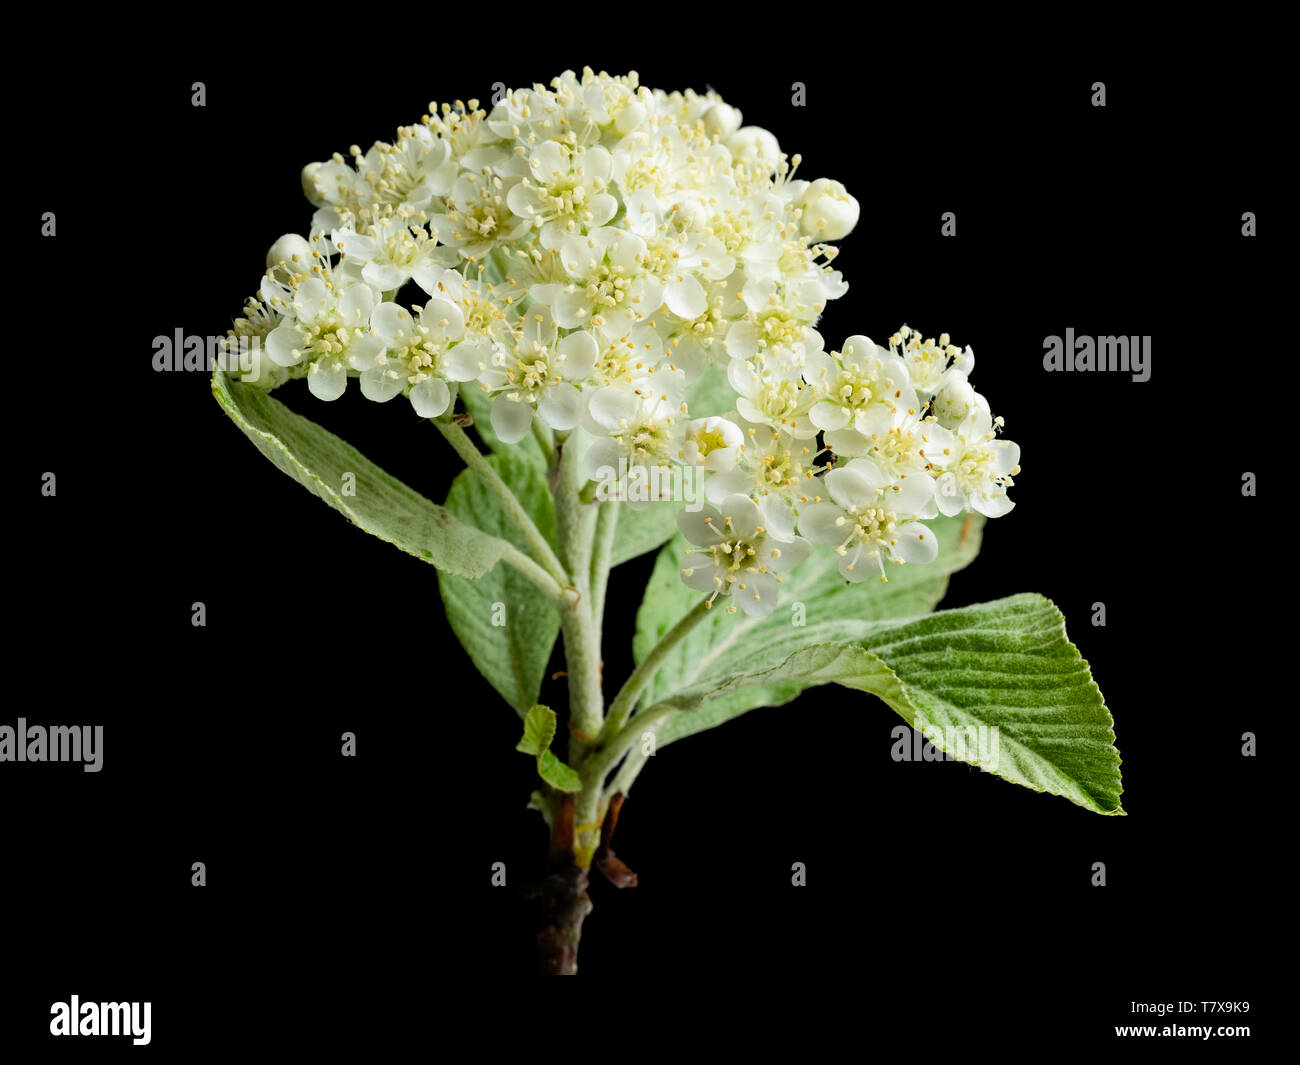 Silvery spring foliage and creamy flowers of the hardy whitebeam tree, Sorbus aria 'Lutescens', on a black background - Stock Image